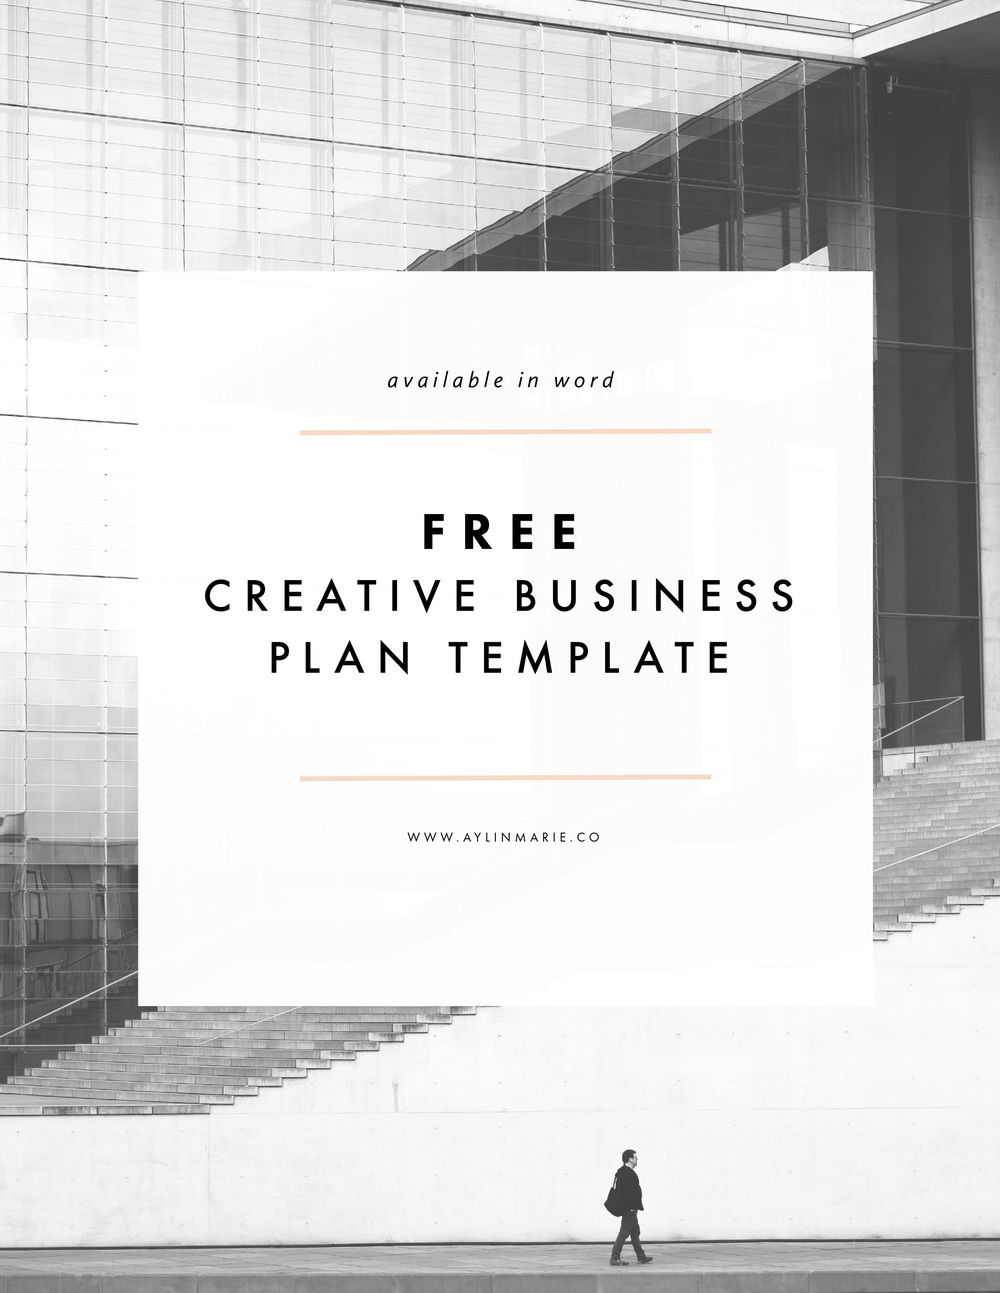 Freebie Creative Business Plan Template Aylin Marie - Business plans template